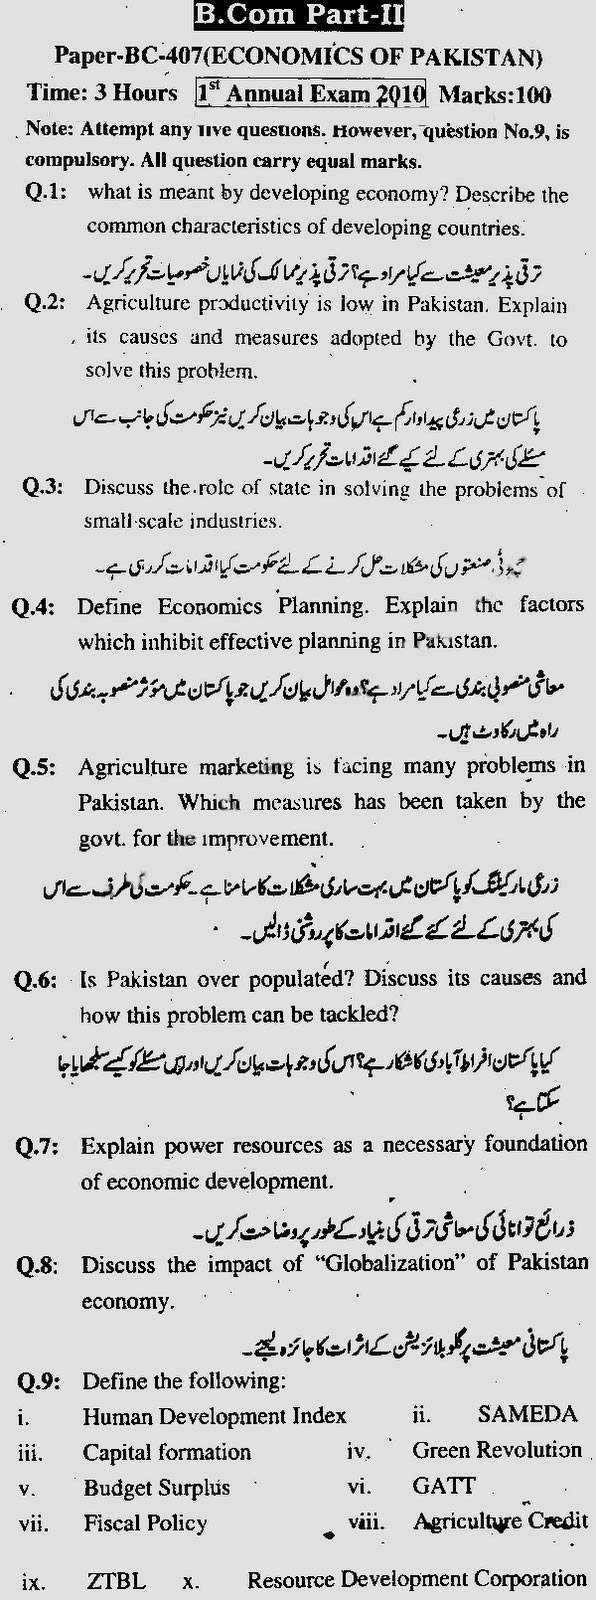 B.Com BC 407 Economics of Pakistan Past Paper University